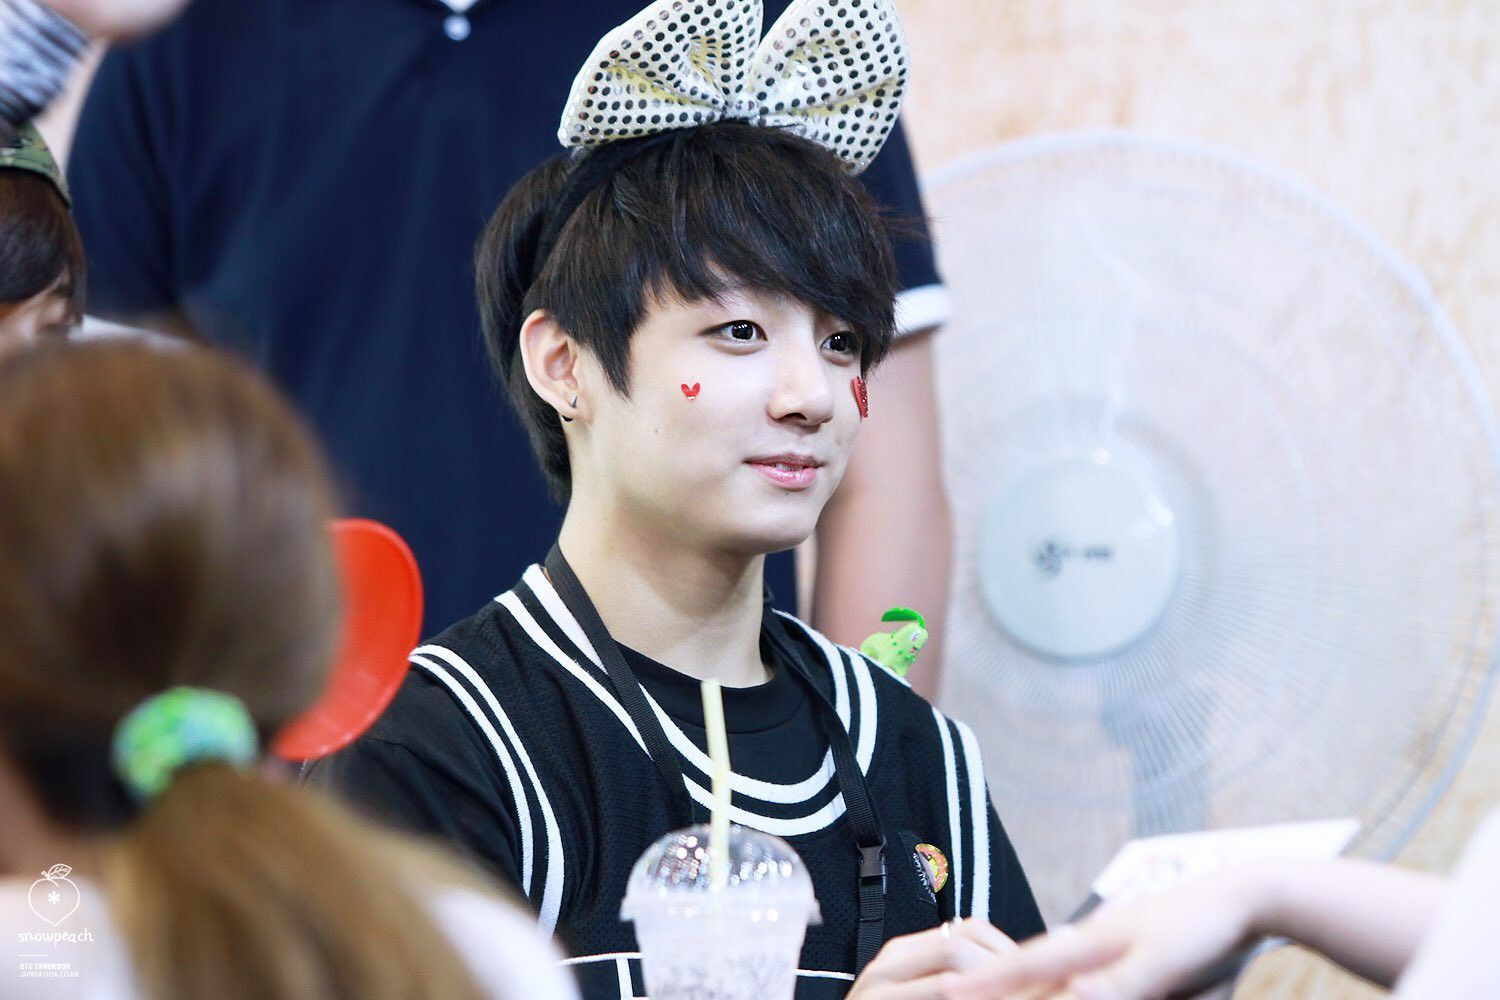 Pin by ONCE ARMY on Jungkook Fancam   Jungkook oppa, Jeon jungkook ...